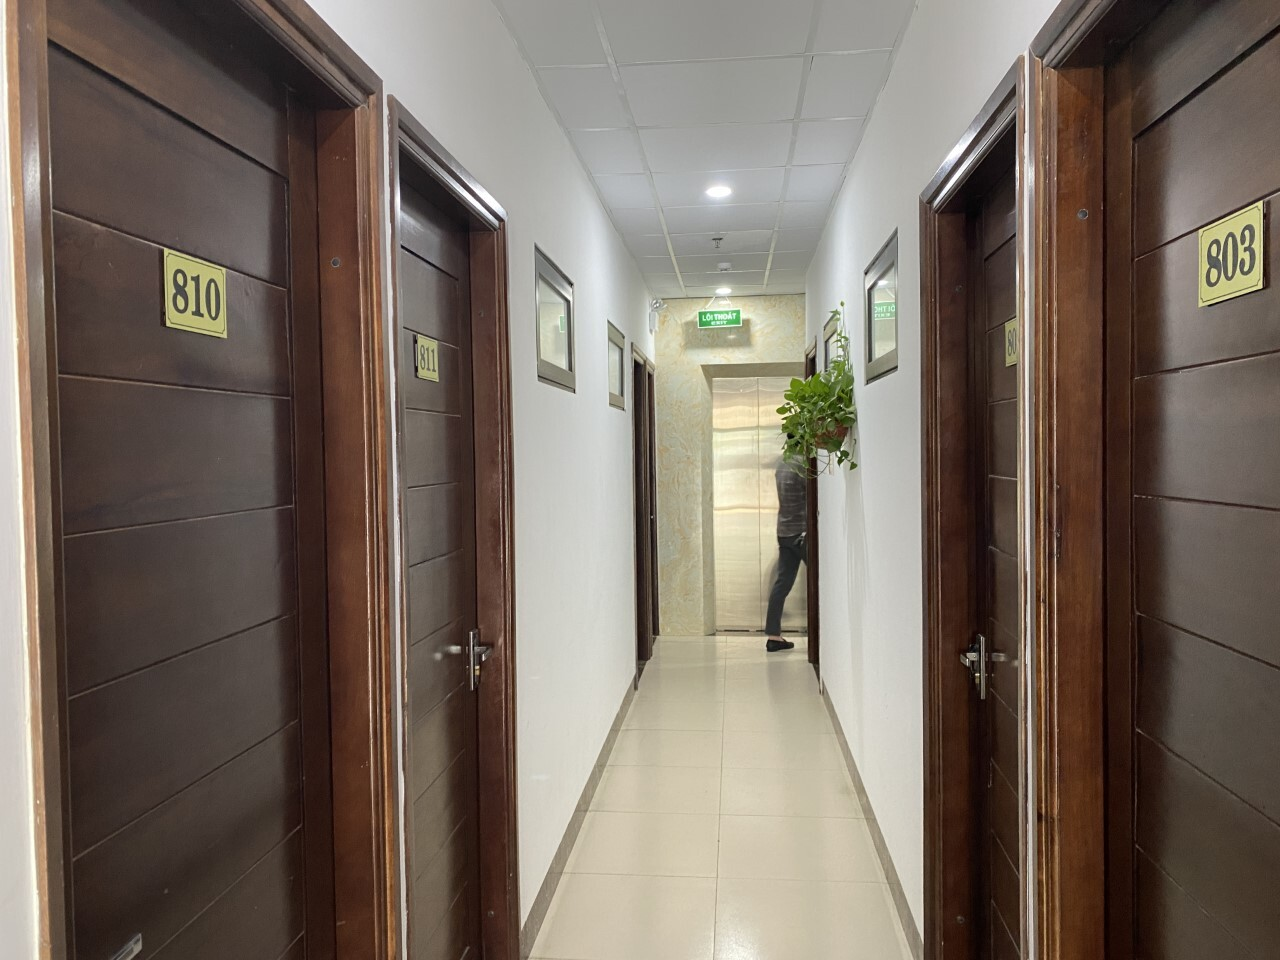 Zero dong apartment provides shelter for pandemic-hit Hanoi migrant workers